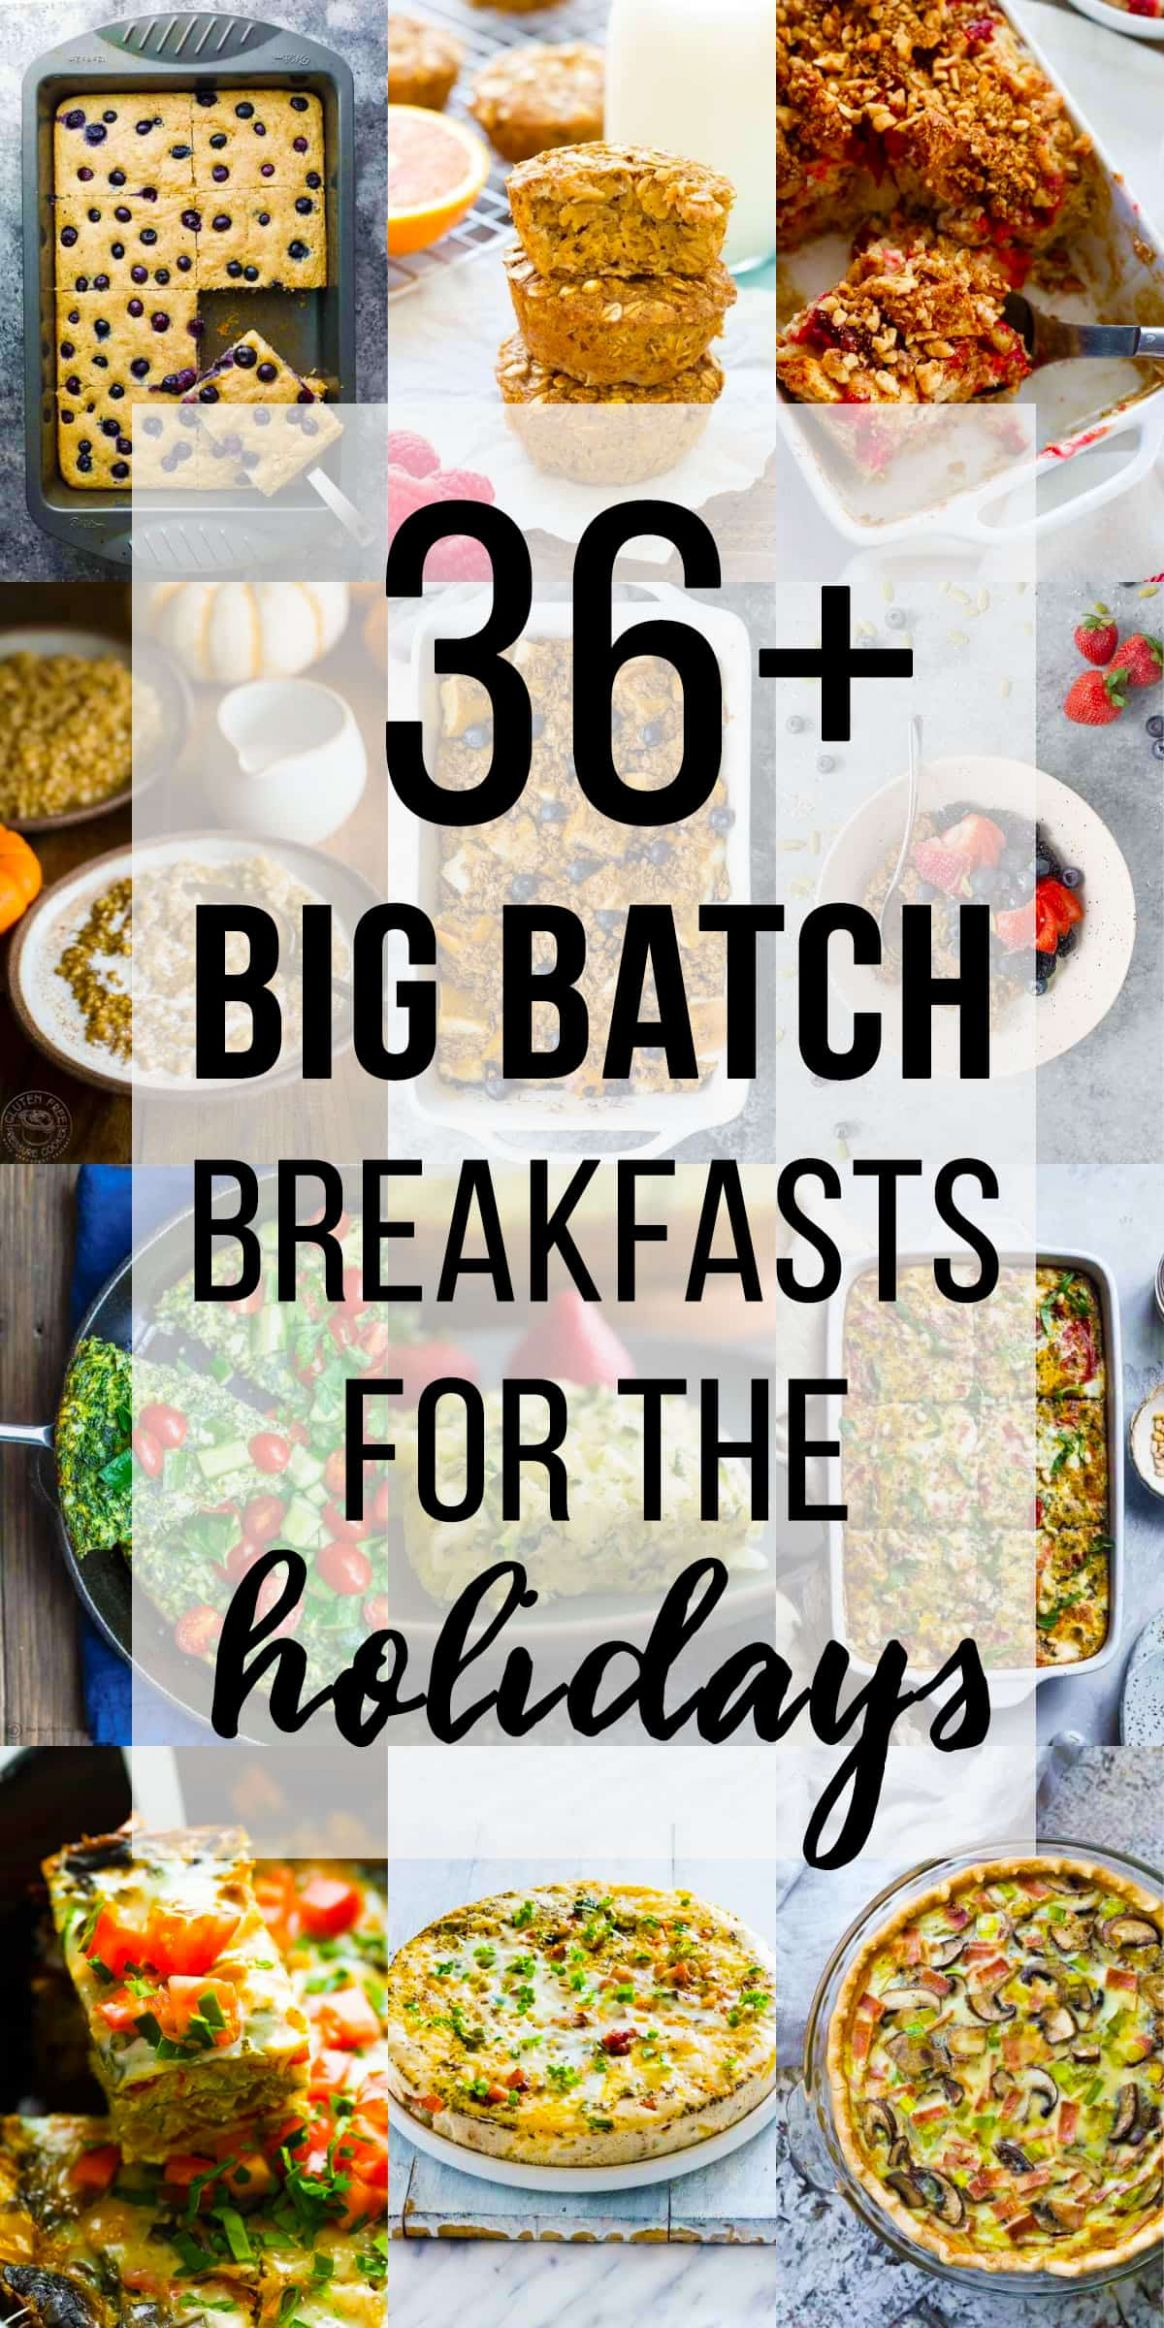 12+ Big Batch Christmas Breakfast Ideas   Sweet Peas and Saffron - Easy Recipes For Large Groups